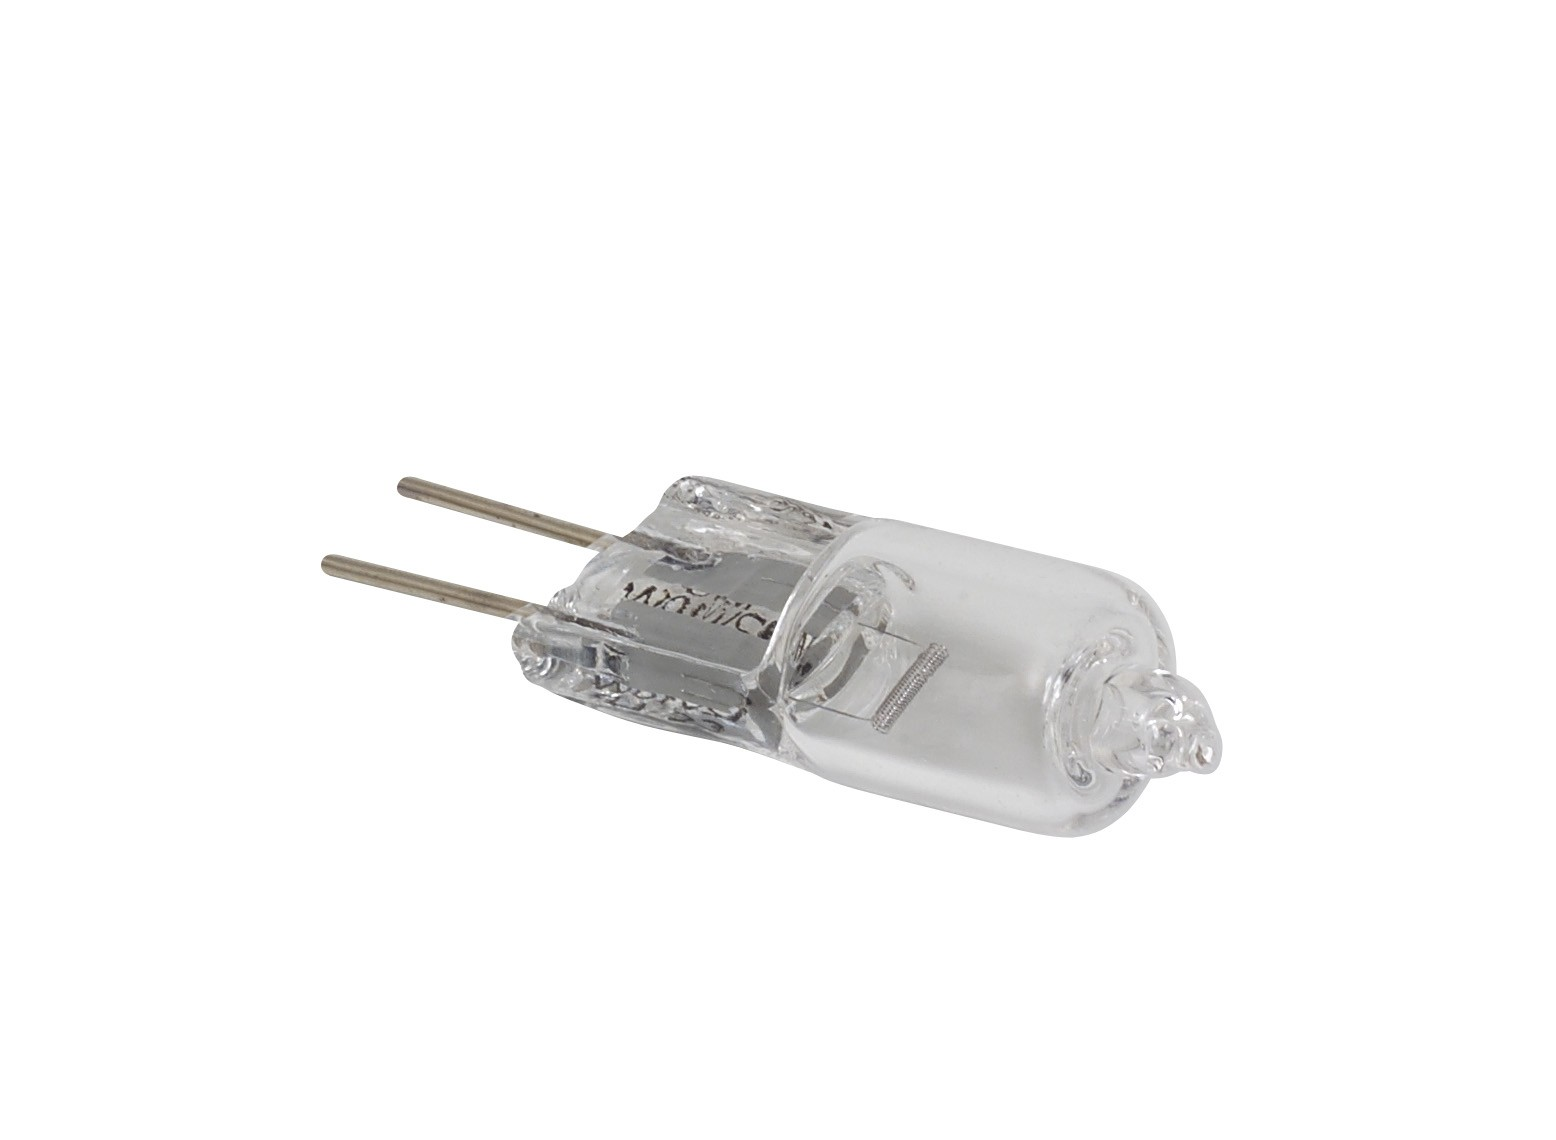 Capsule G4 10 watt long life lamp